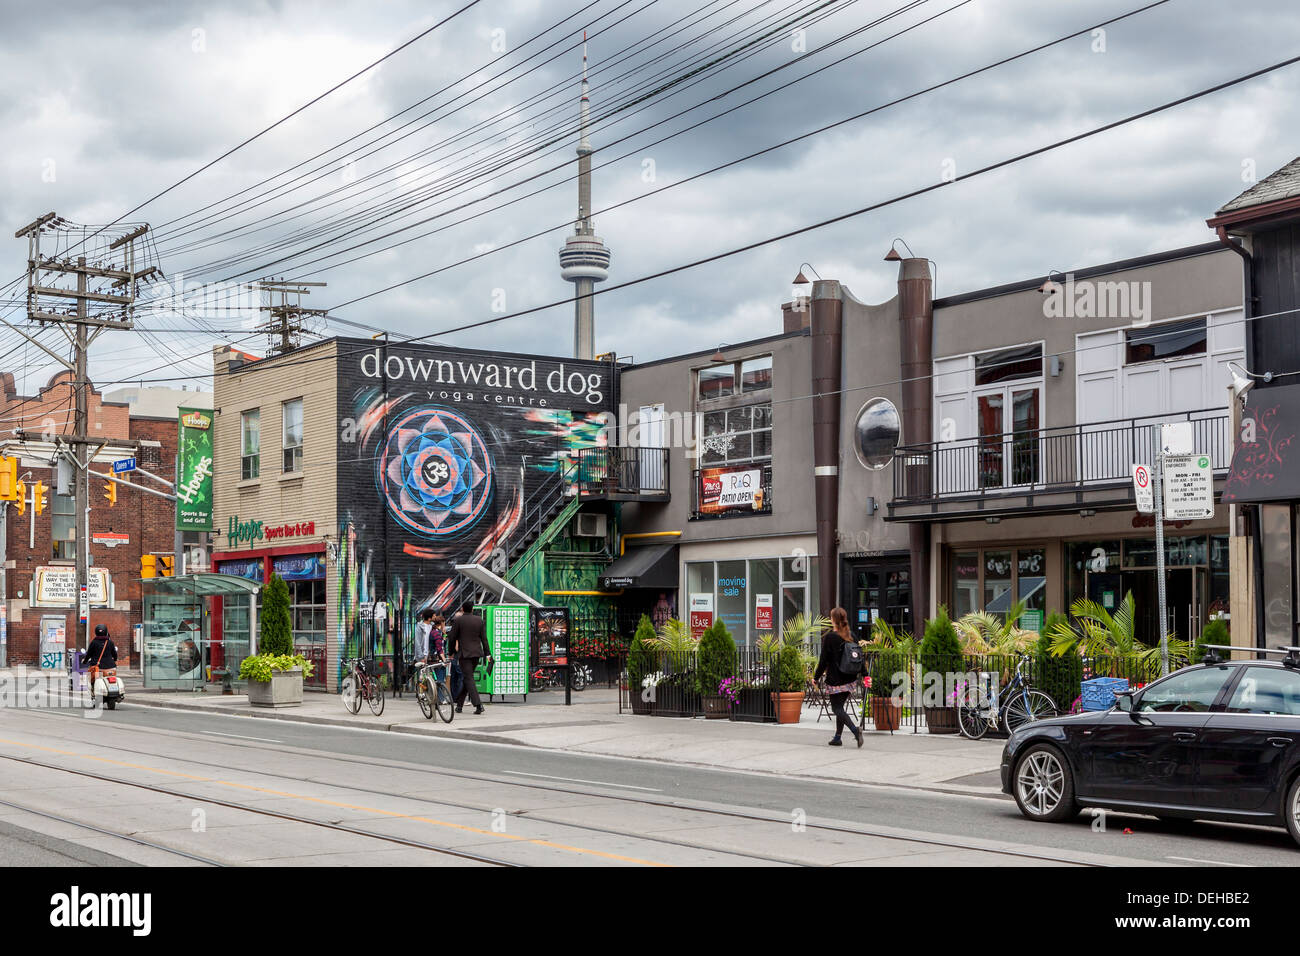 'Downward Dog' yoga centre and Hoops Sports bar and grill - Queen street West, Toronto - Stock Image